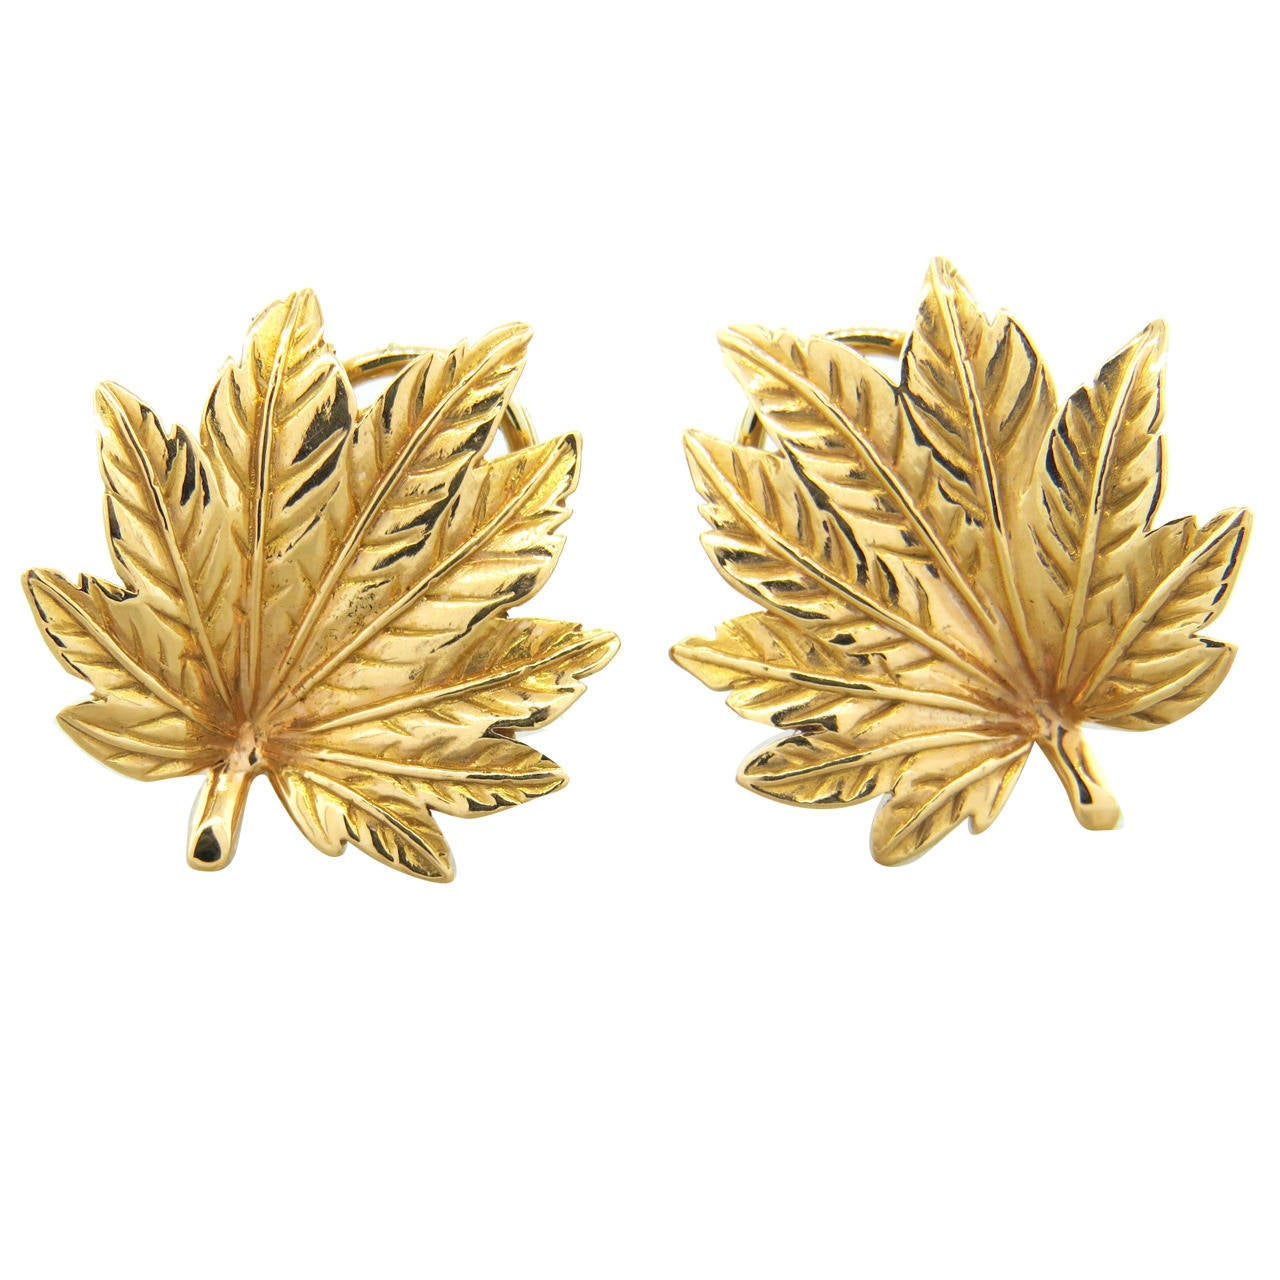 Mish New York Leaf Motif Gold Earrings 1